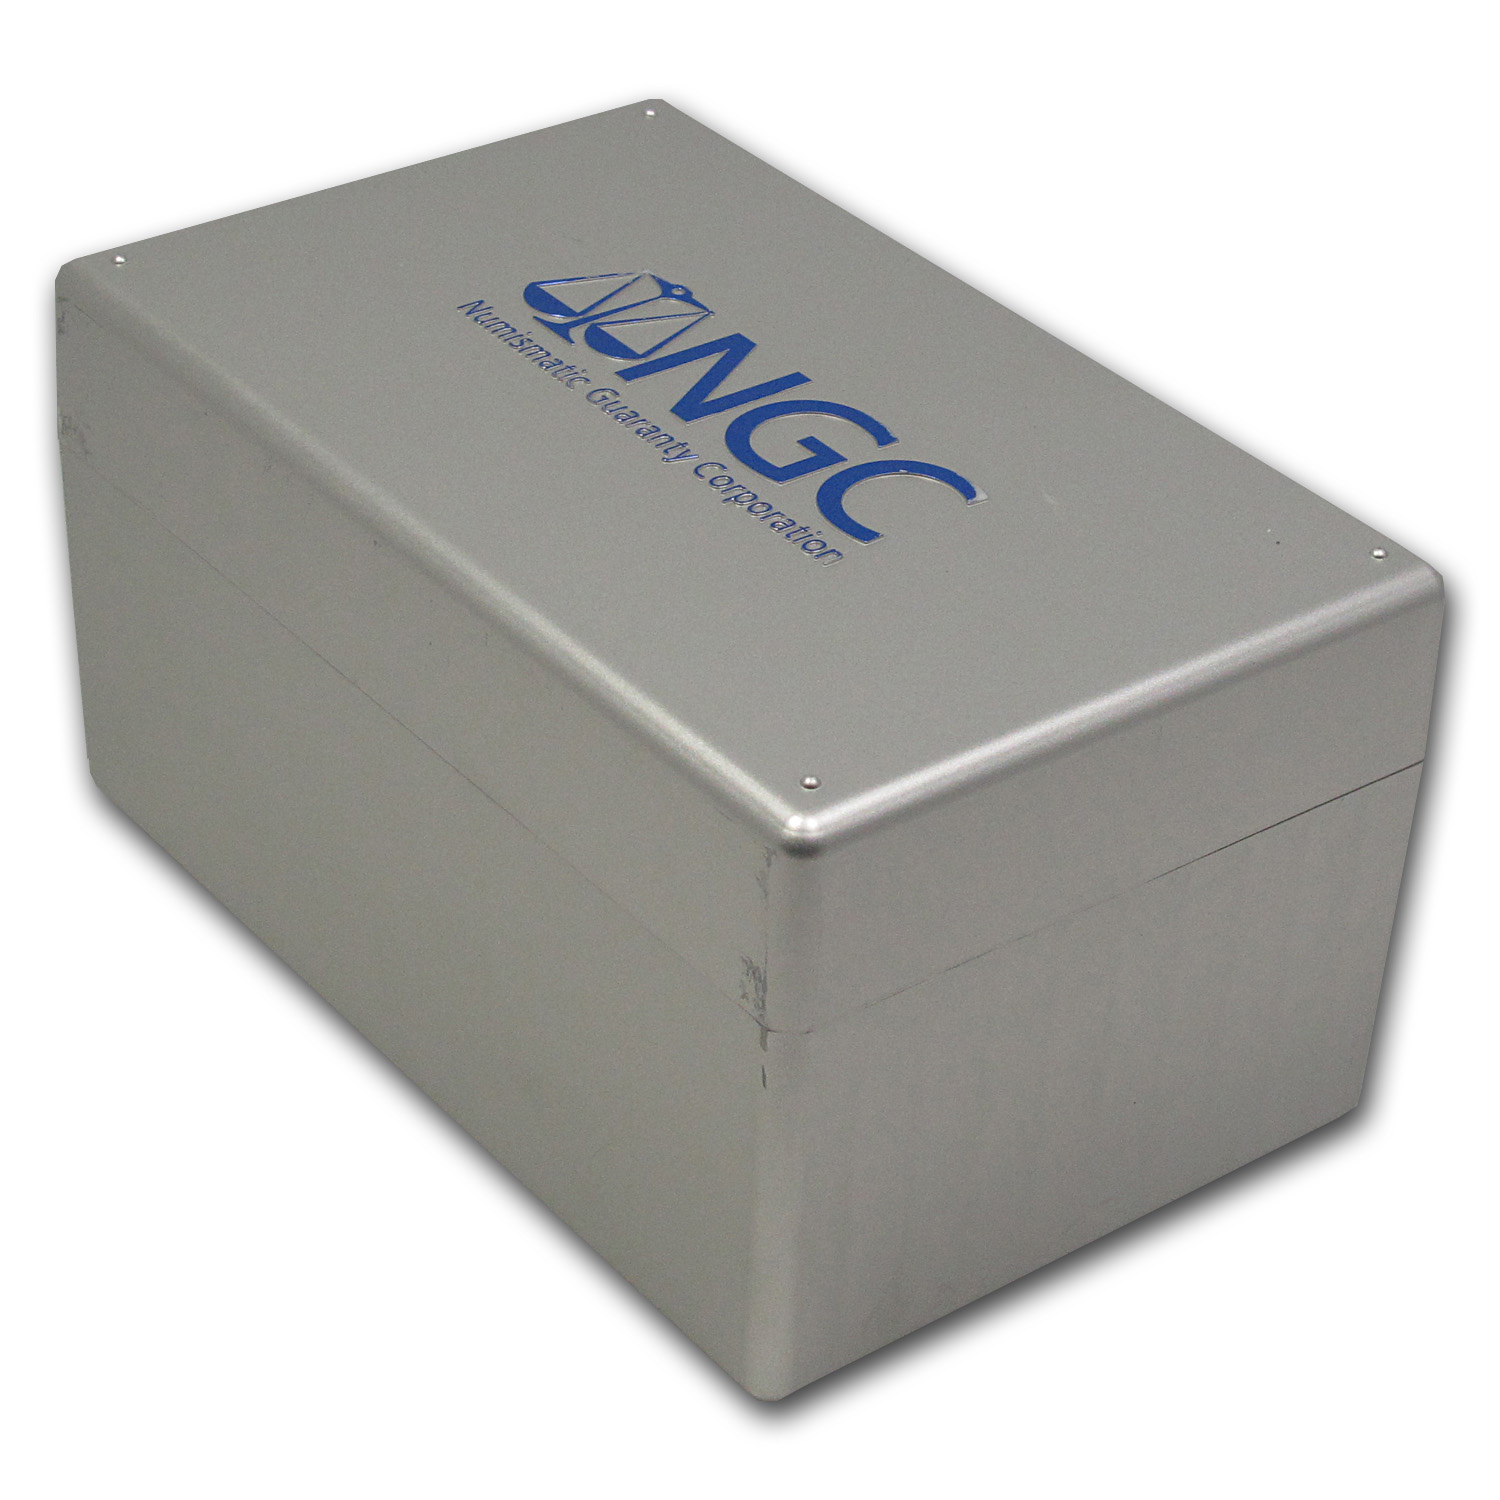 NGC (Uni Set) Coin Storage Boxes (Recycled)